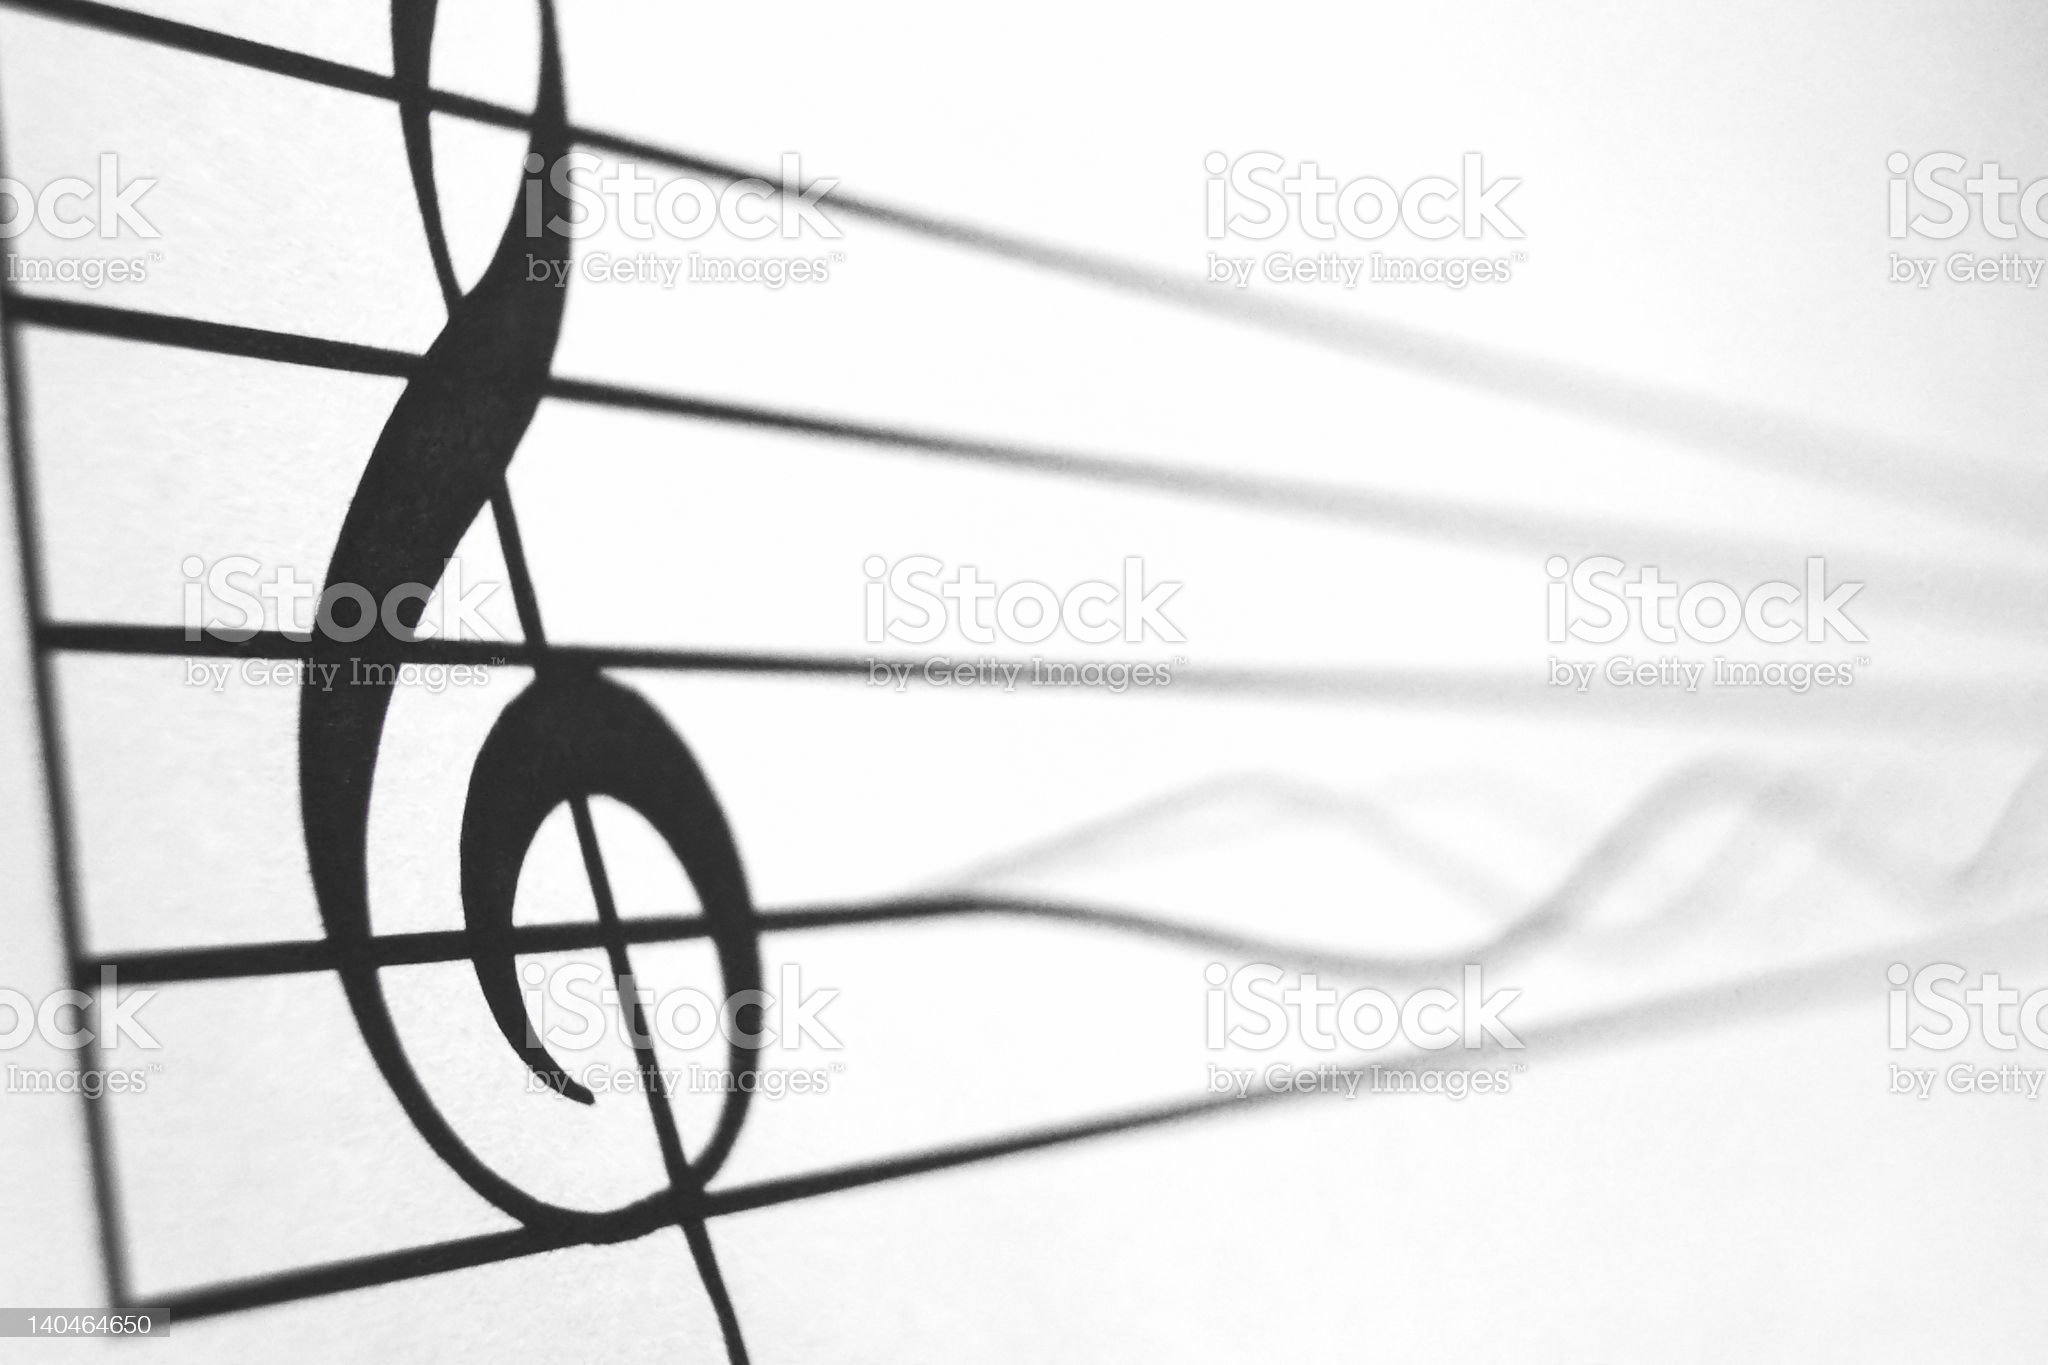 Treble clef in score and a vibrating string royalty-free stock photo